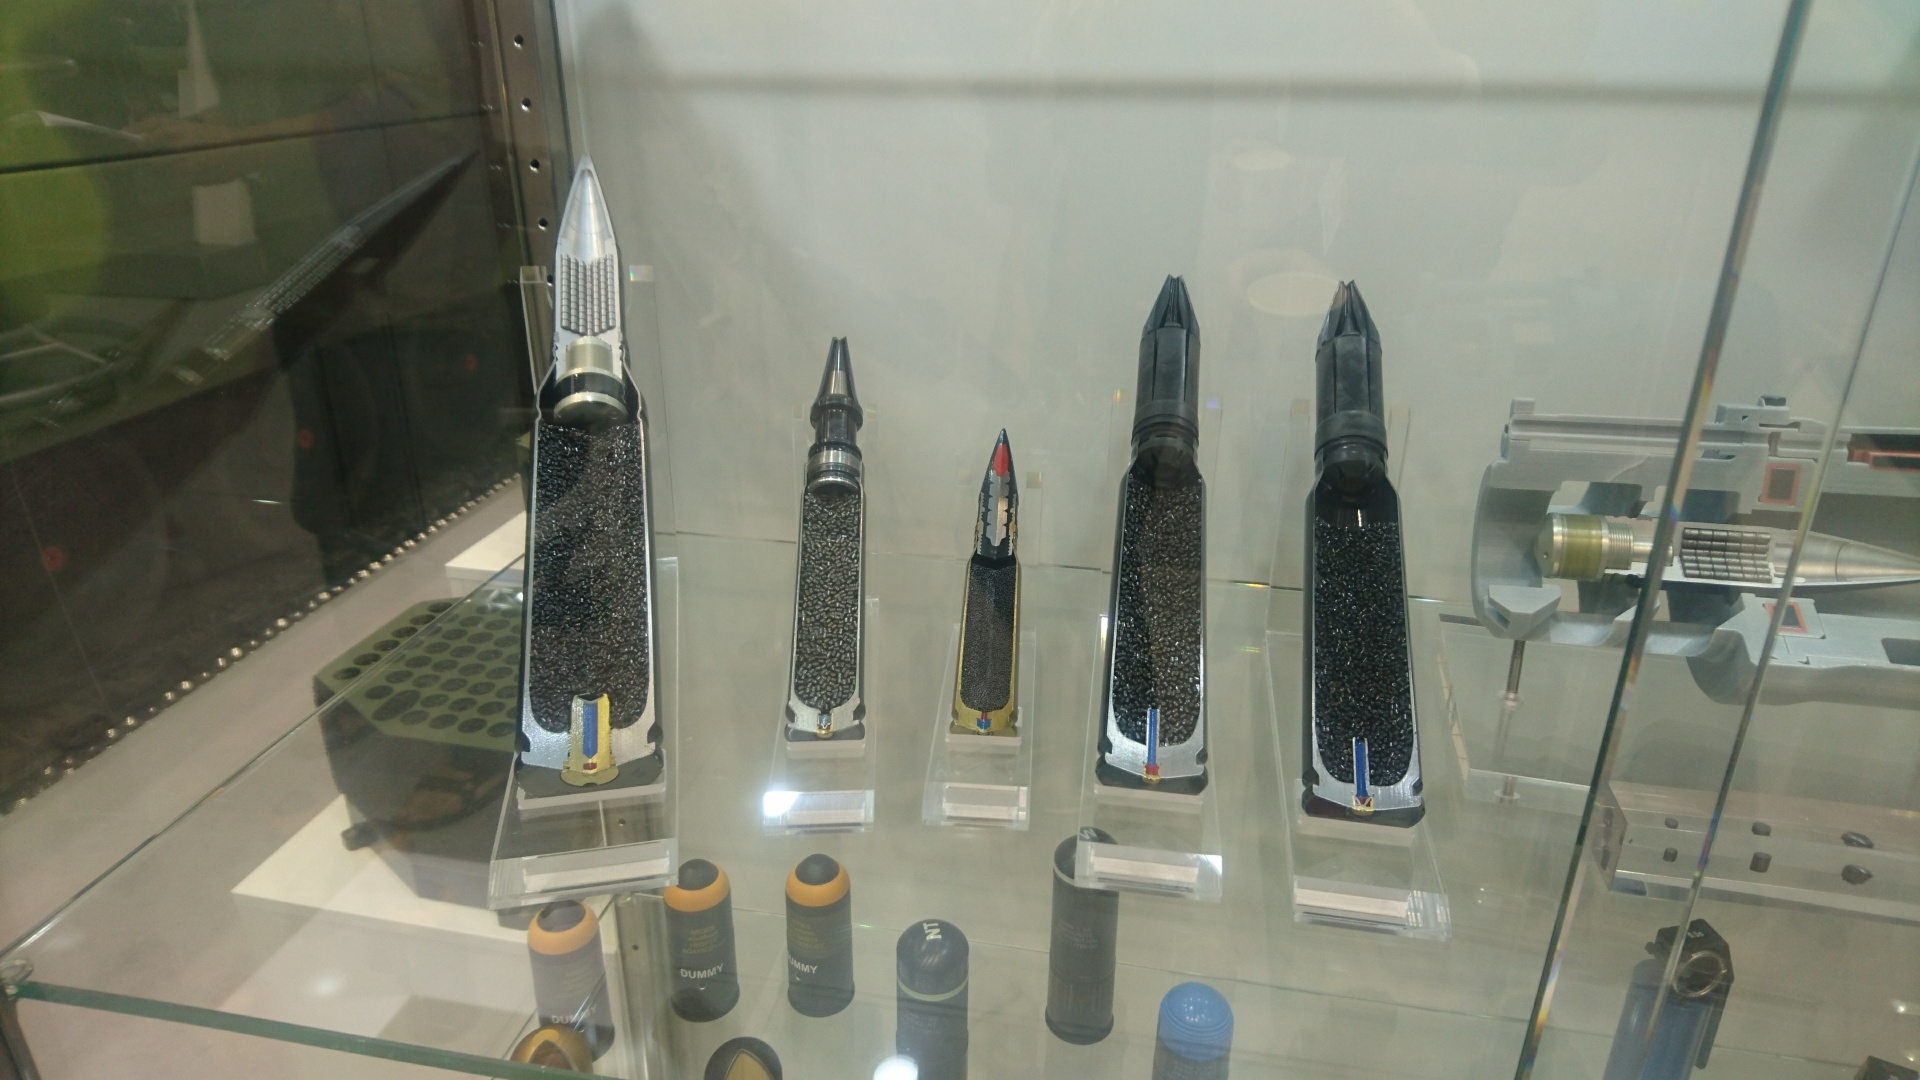 Rheinmetall's exposition of ammunition